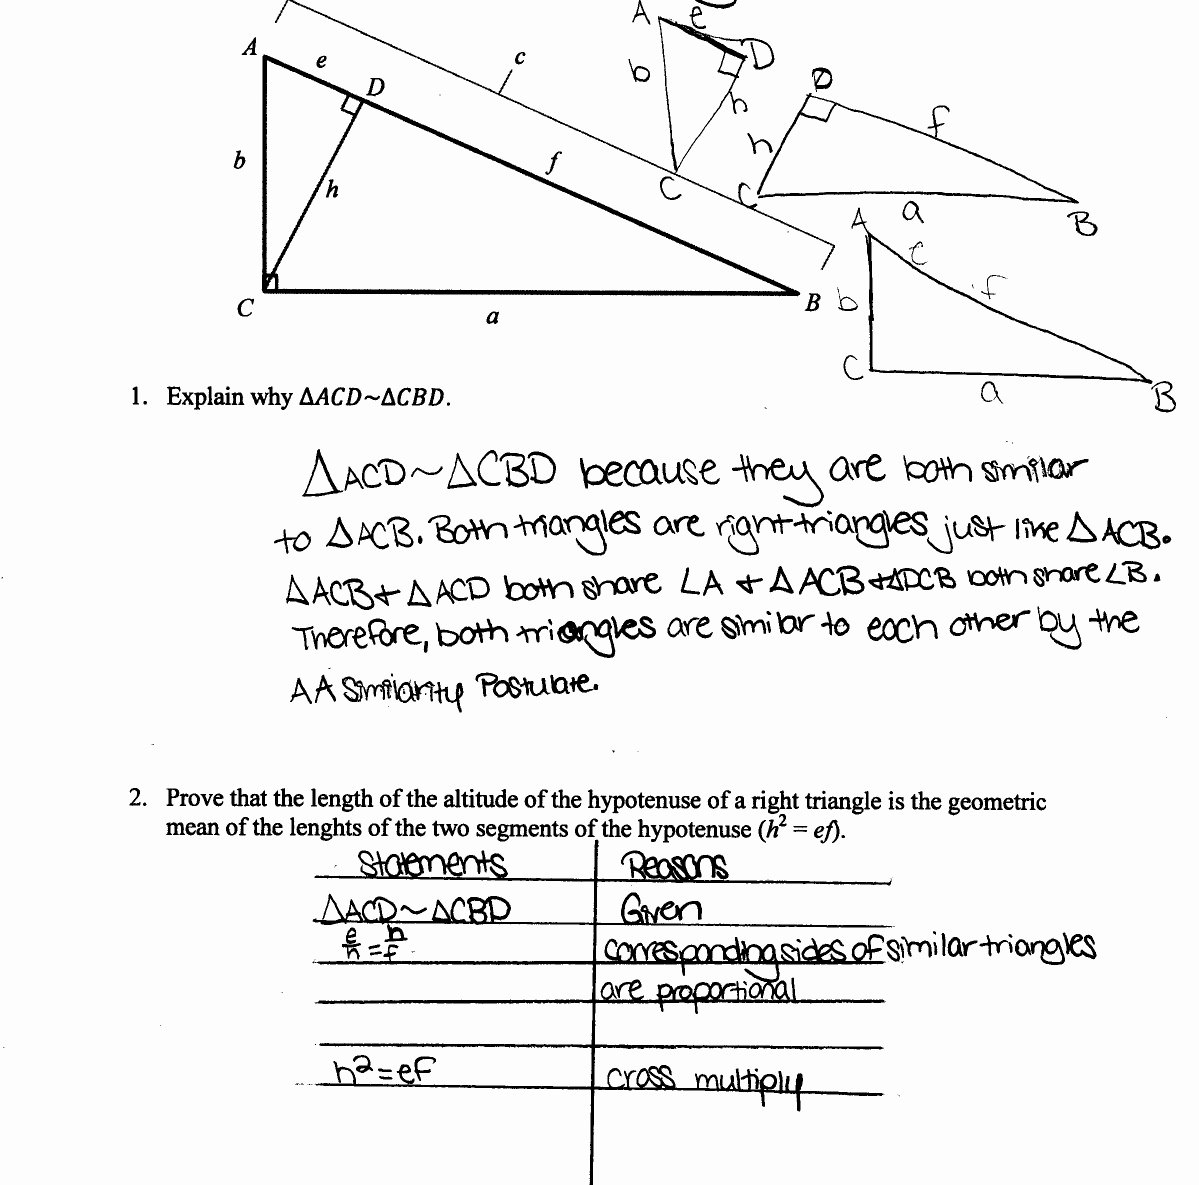 Proving Triangles Similar Worksheet New Geometric Mean Worksheet Write A Proportion for Each